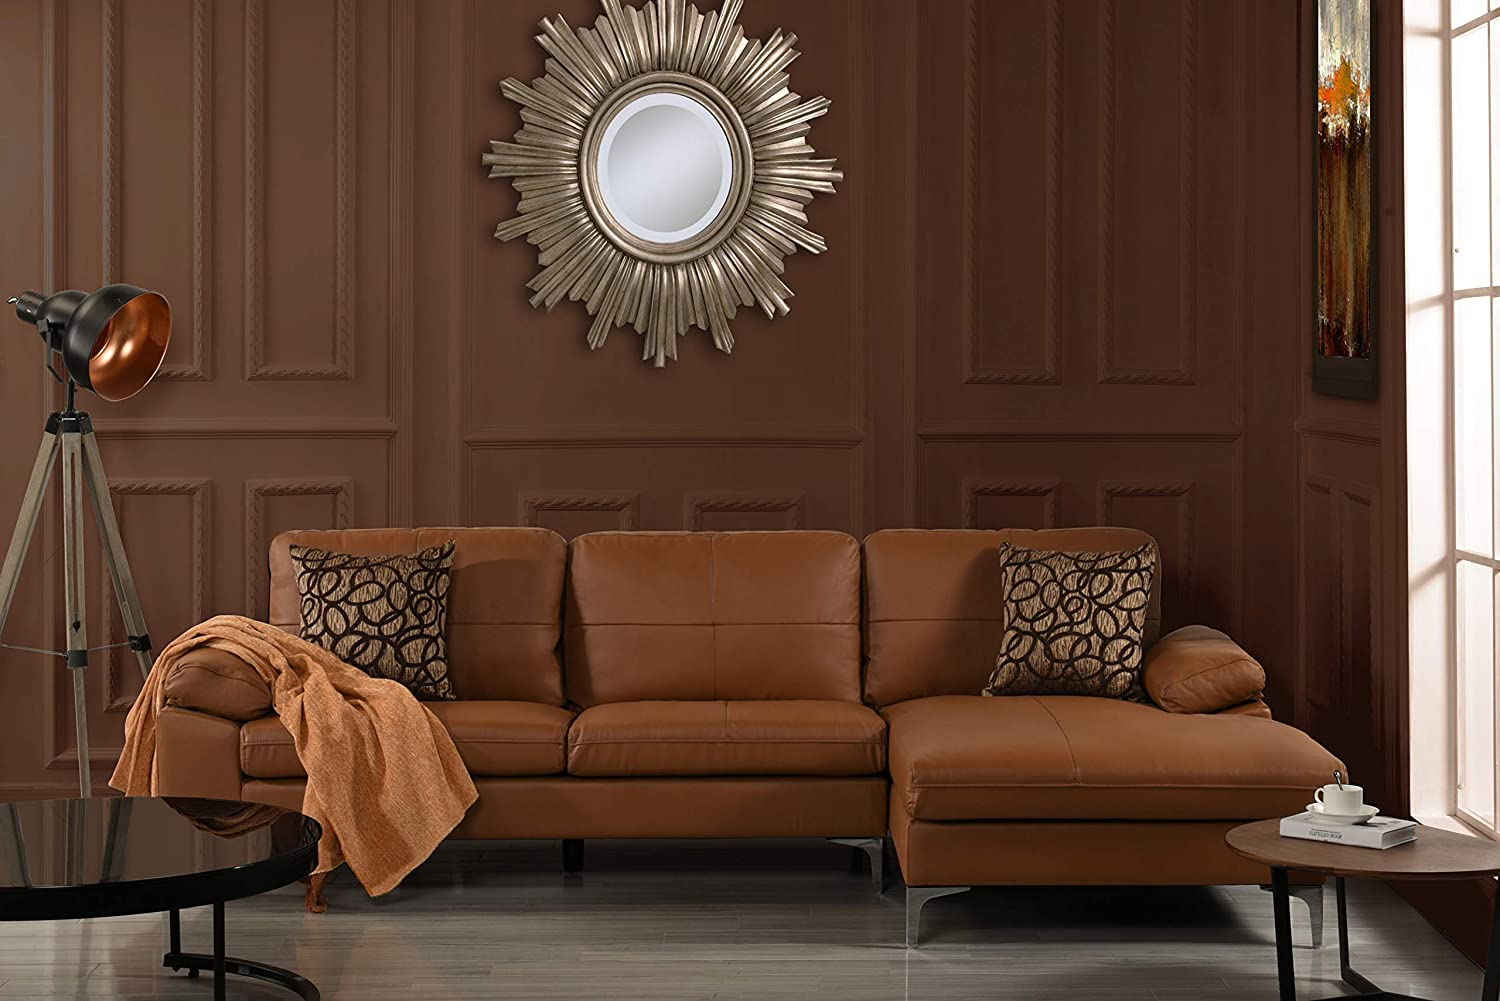 Amazon.com: Leather Sectional Sofa, L-Shape Couch with Chaise, 108.7 ...